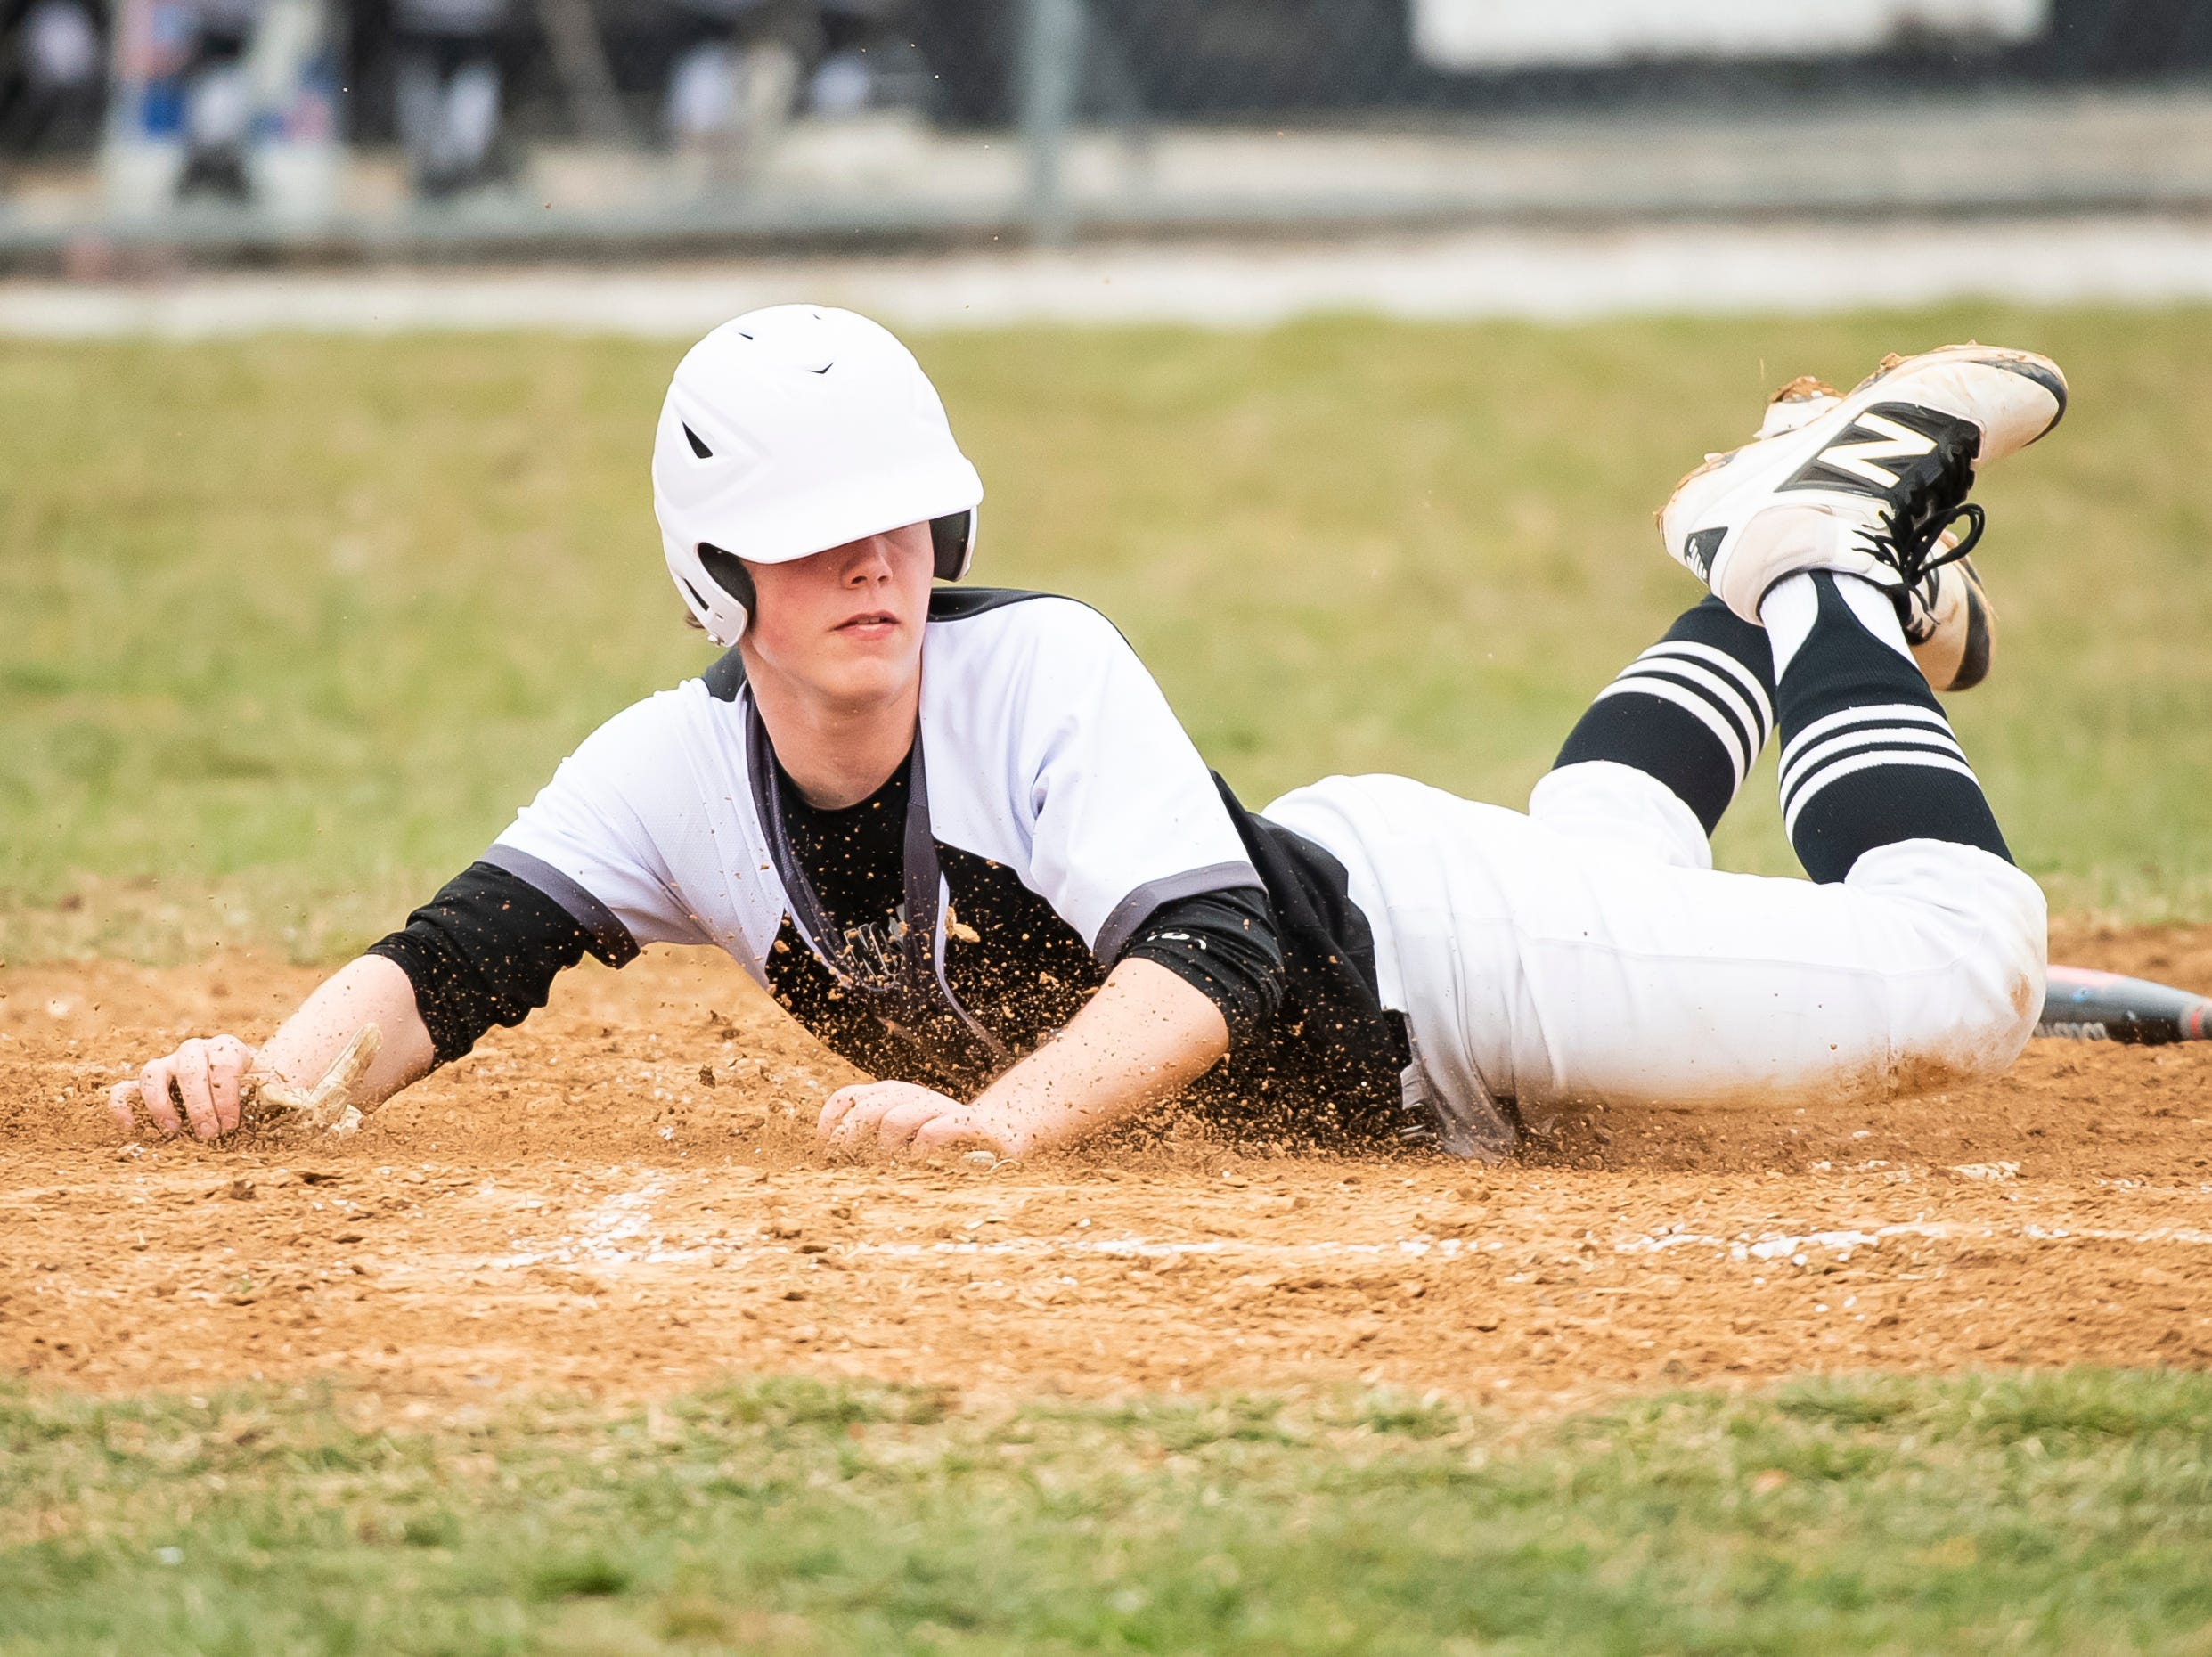 South Western's Ty Cromer dives across home plate to score a run during a game against Carlisle in Hanover on Friday, March 29, 2019. The Mustangs won 11-9.